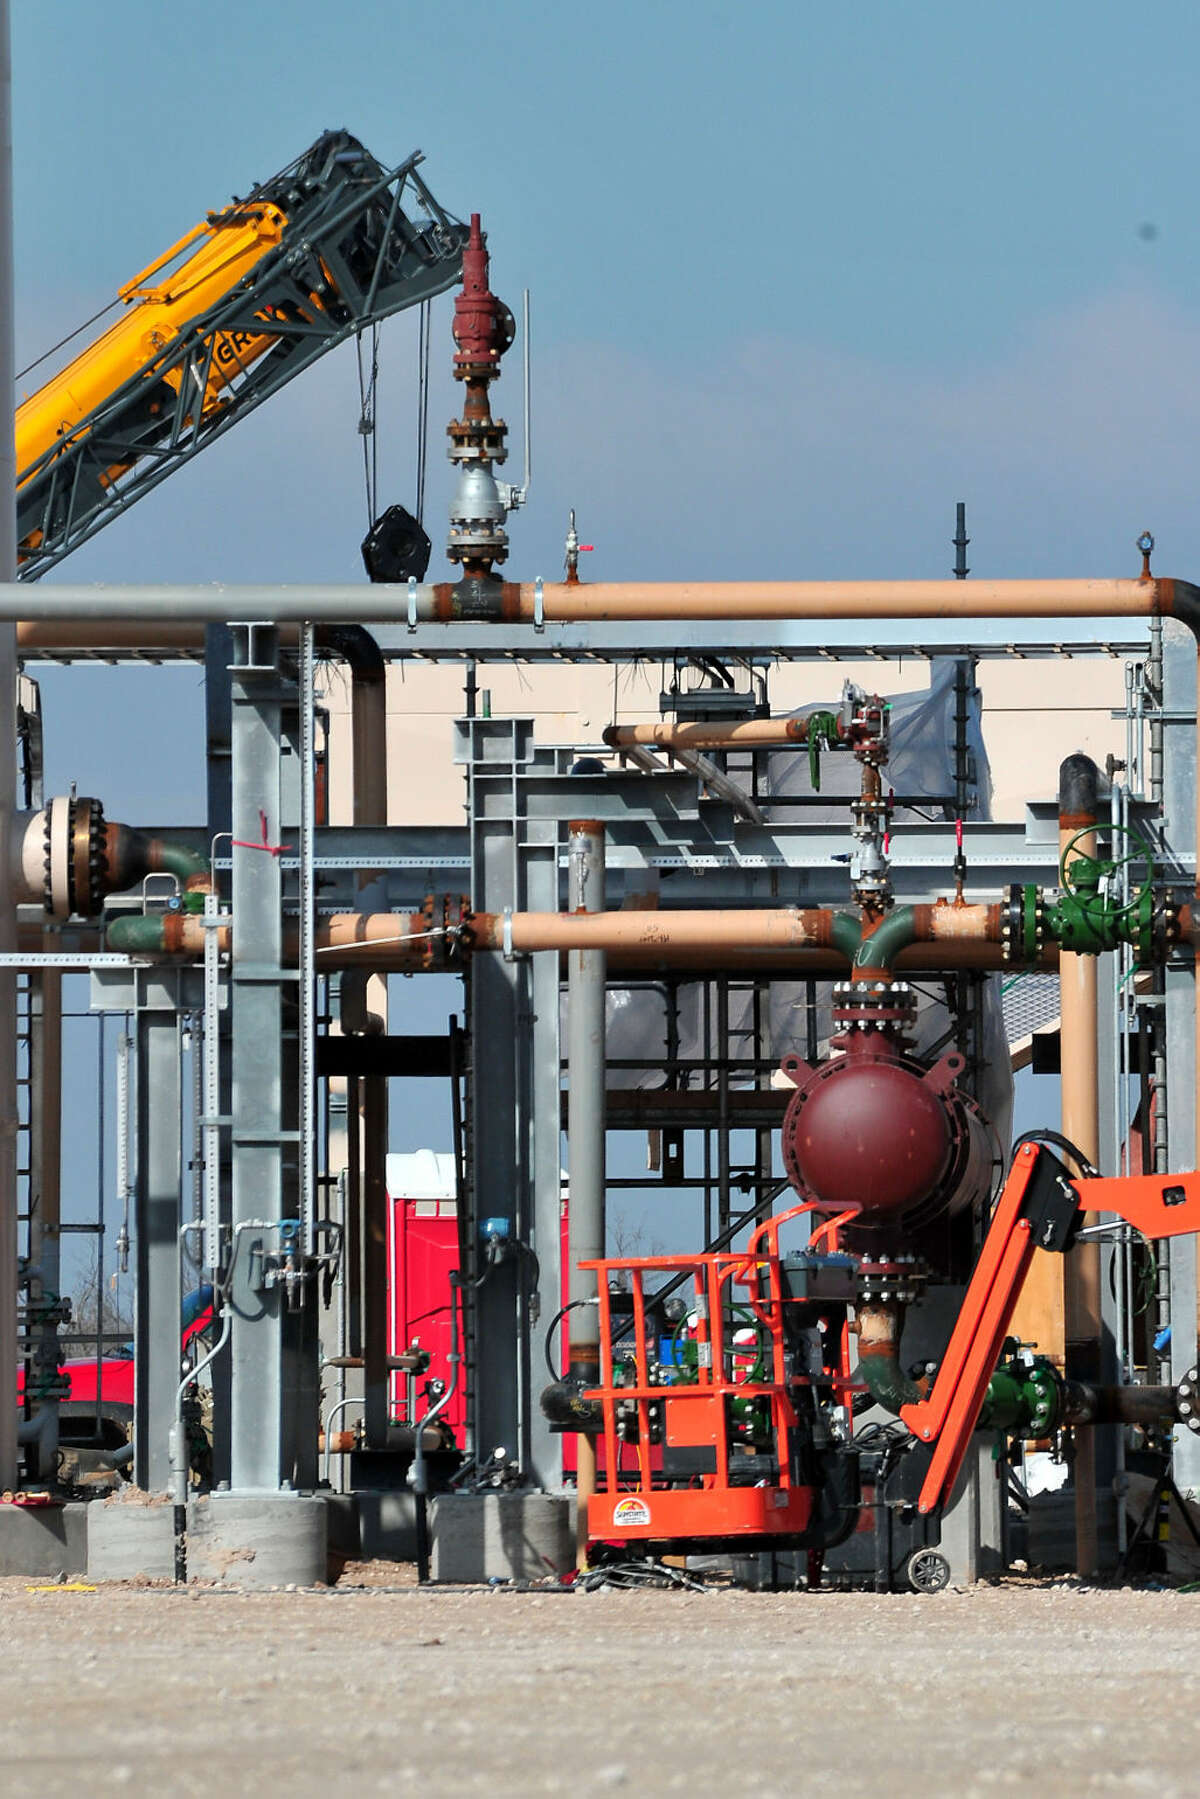 Kimberley Meyer/Special to the Houston Chronicle Work is underway to complete a new drilling site while other rigs are closing in Reagan County. Reagan County includes horizontal drilling rigs used for fracking to recover oil. These rigs provide jobs and money for Big Lake. Some Rigs in the area are closing due to the recent drop in price of oil.